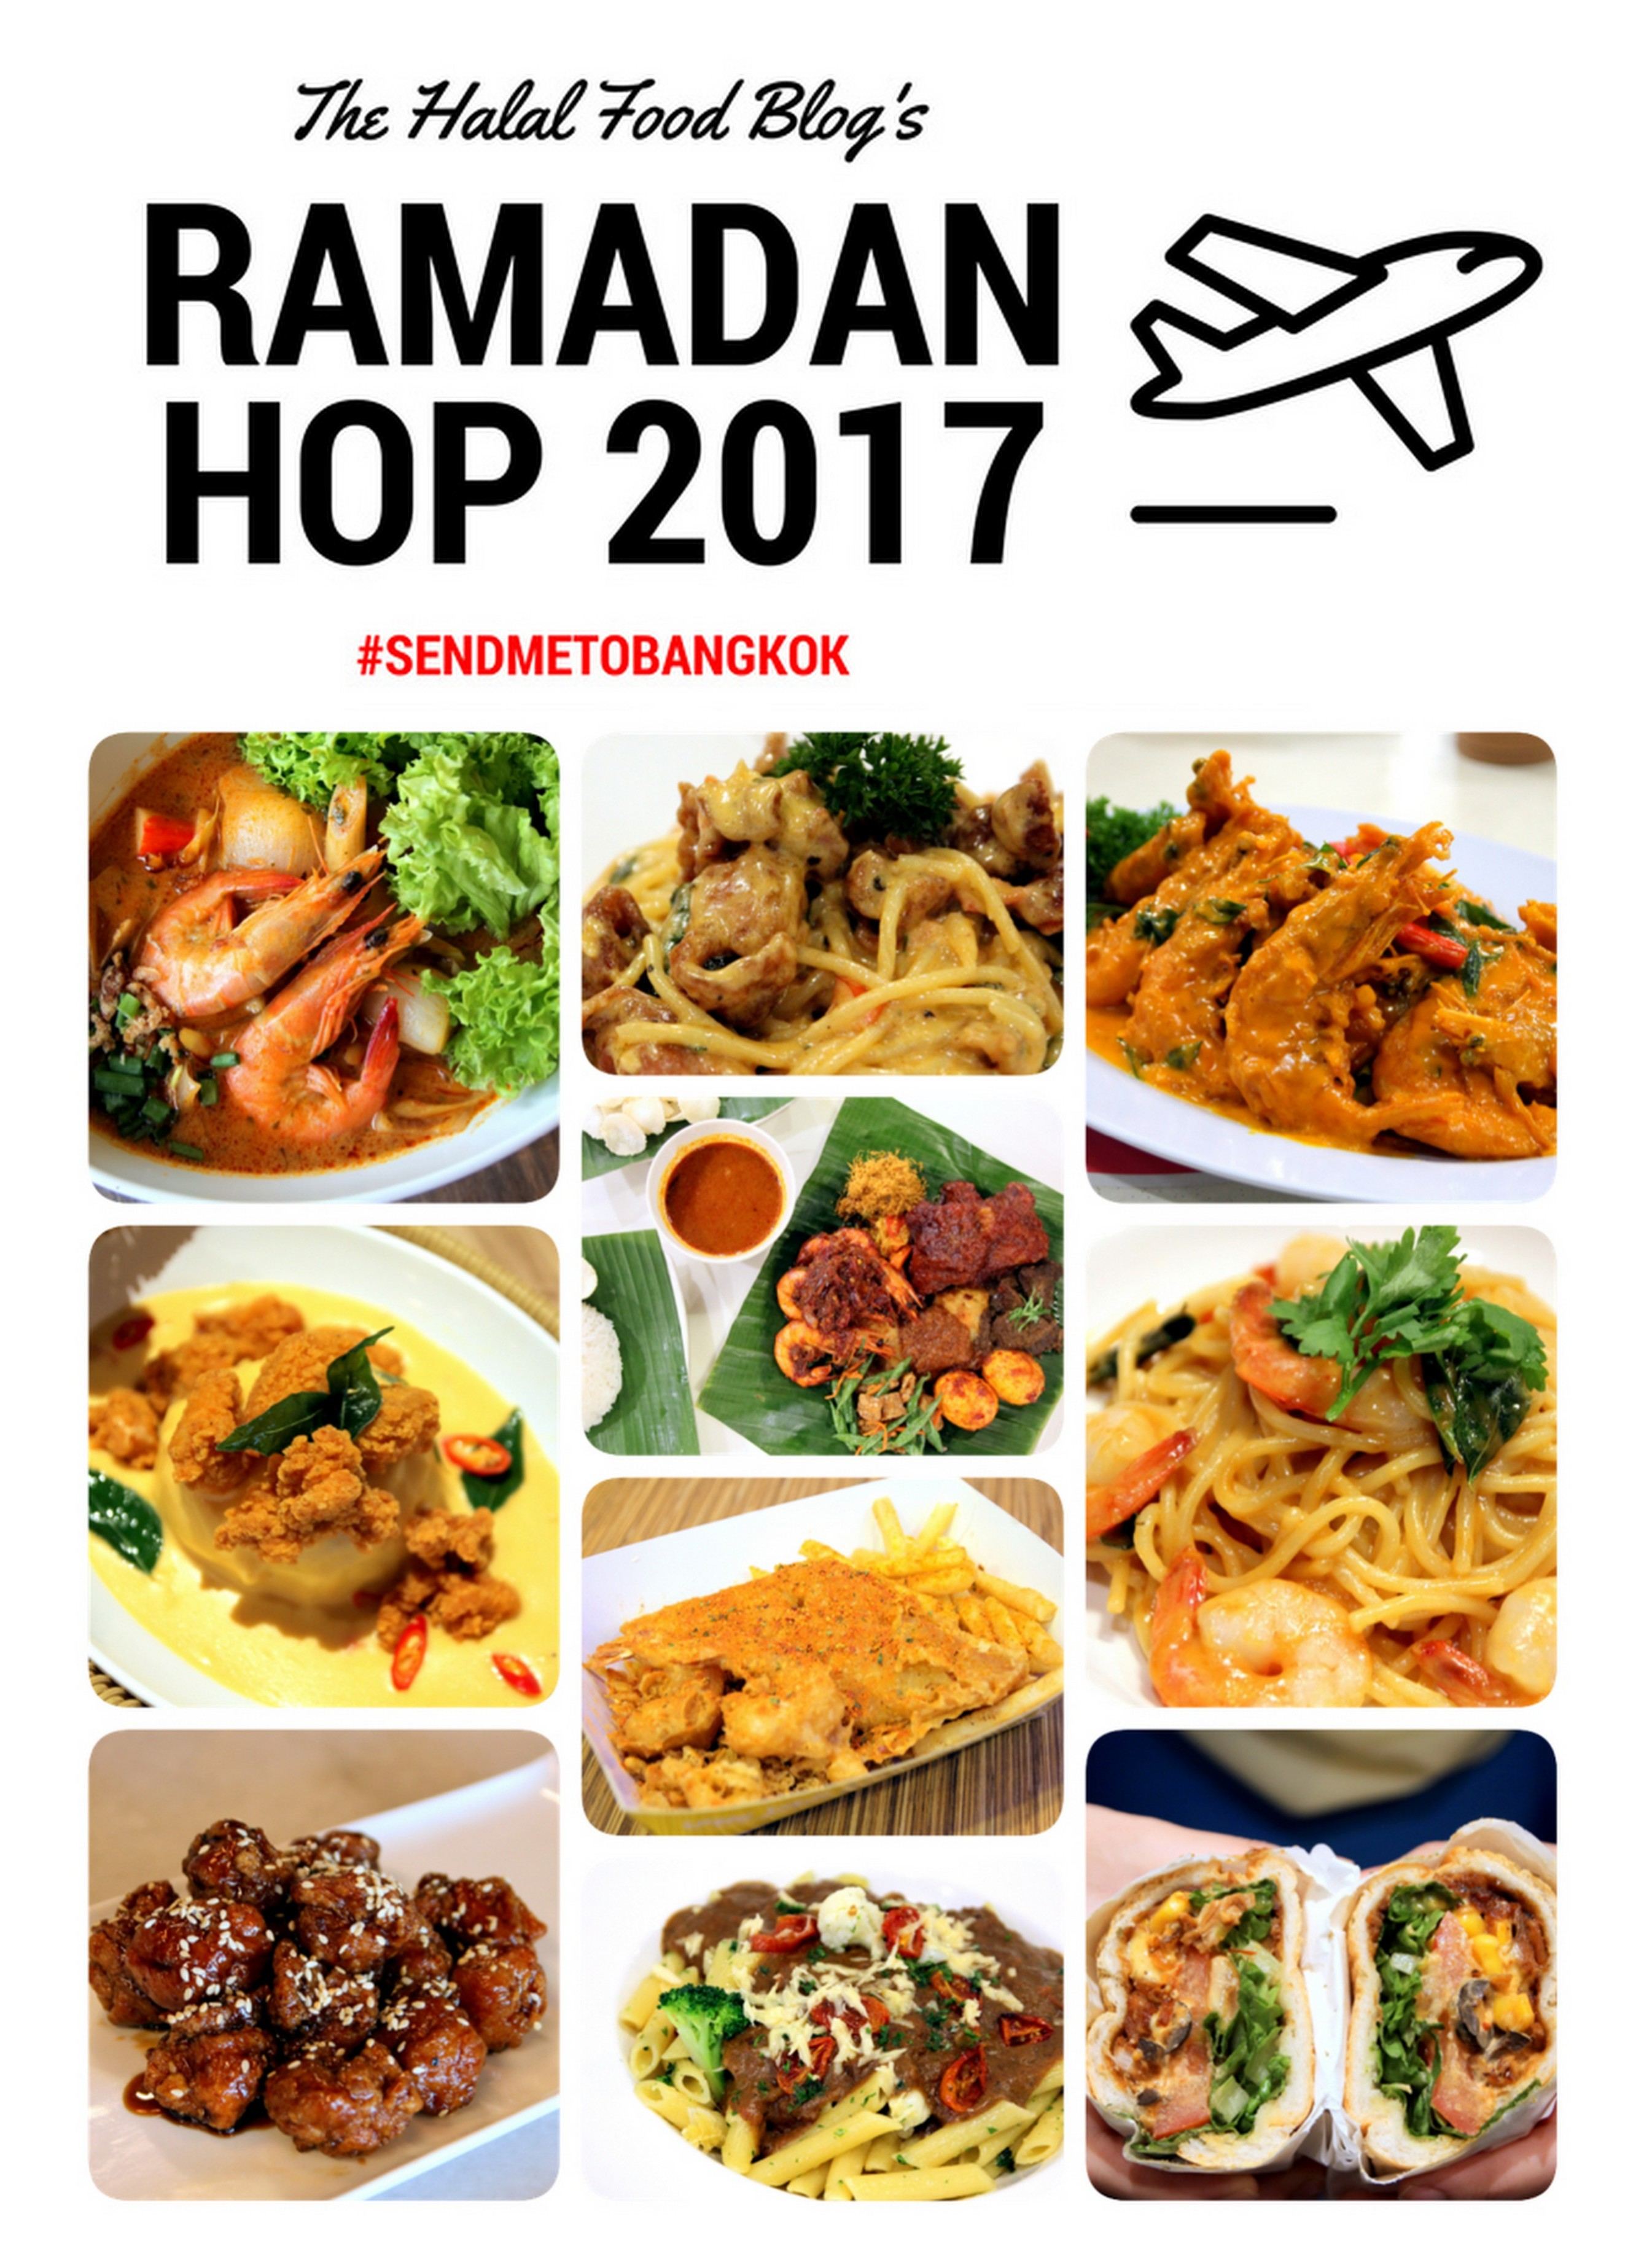 The Halal Food Blog's #RamadanHop 2017